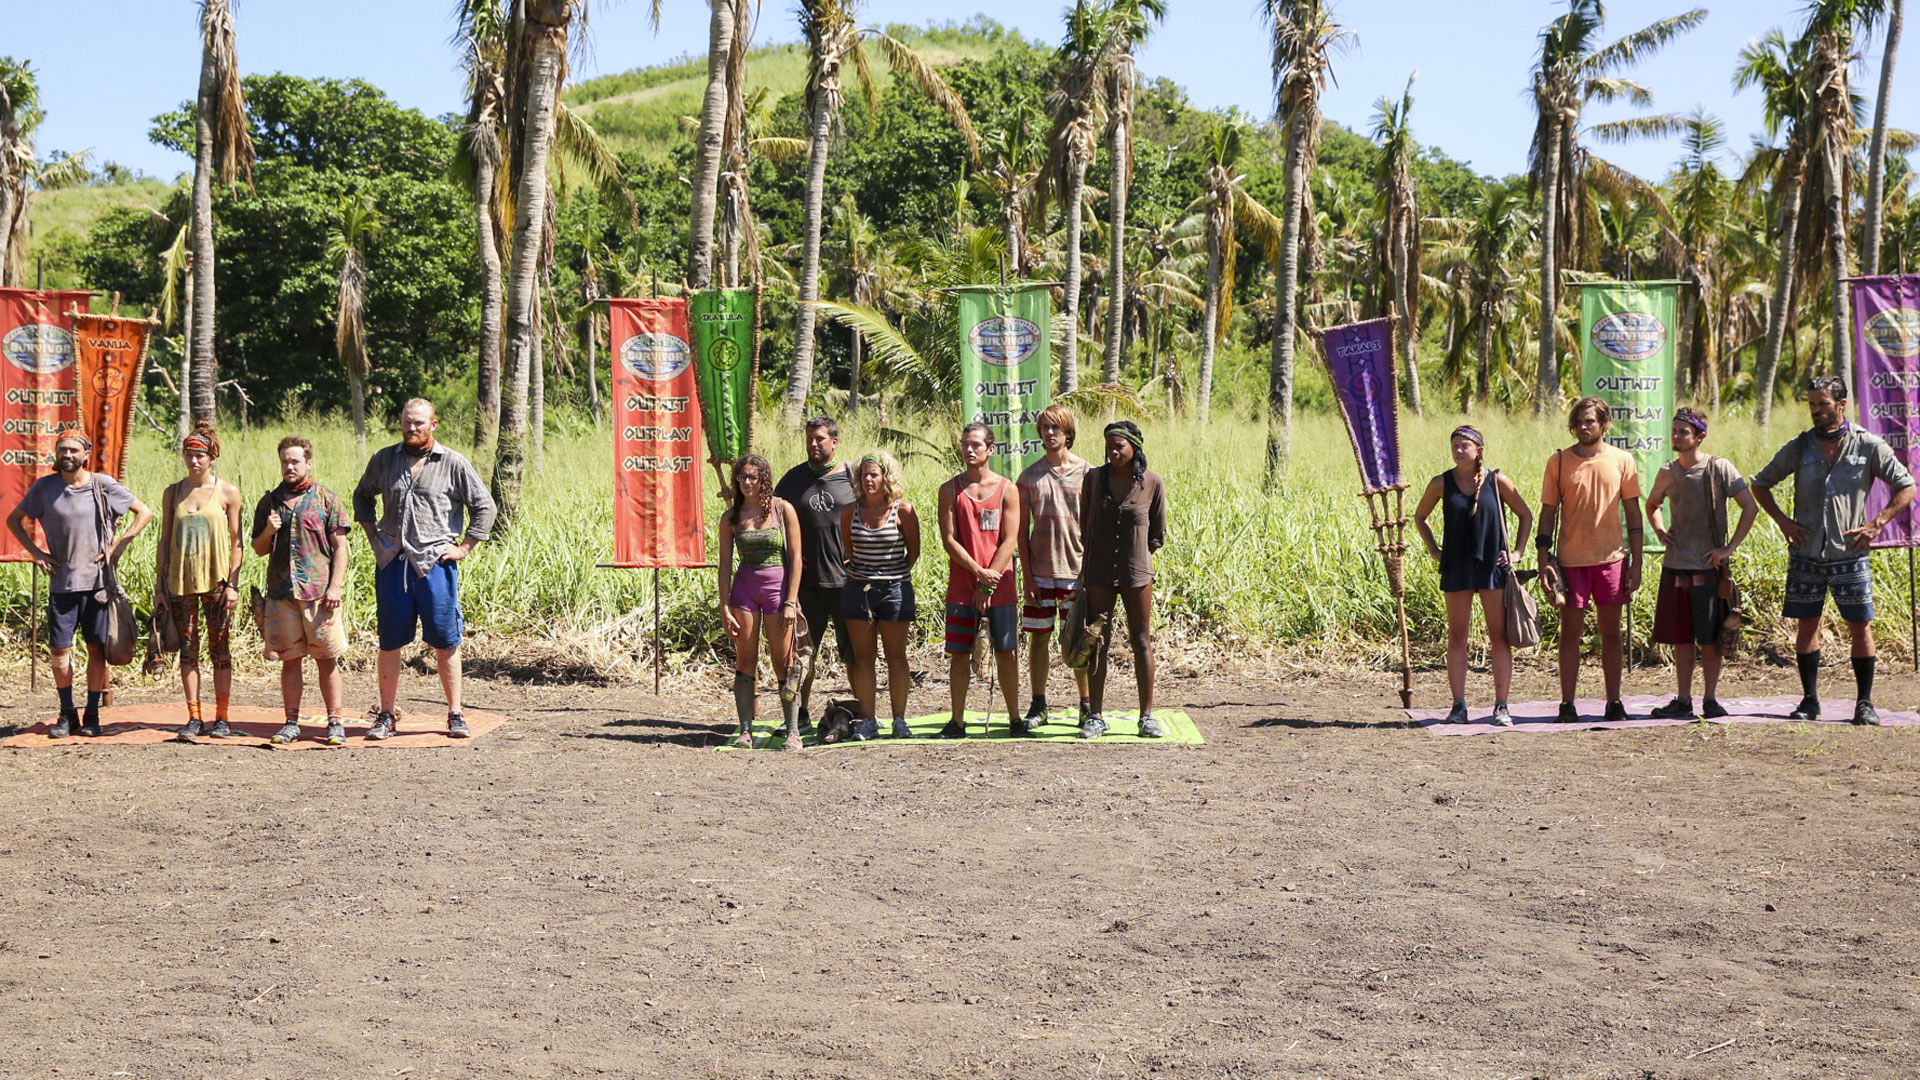 The 14 remaining Survivor castaways get a glimpse of their next Immunity challenge.